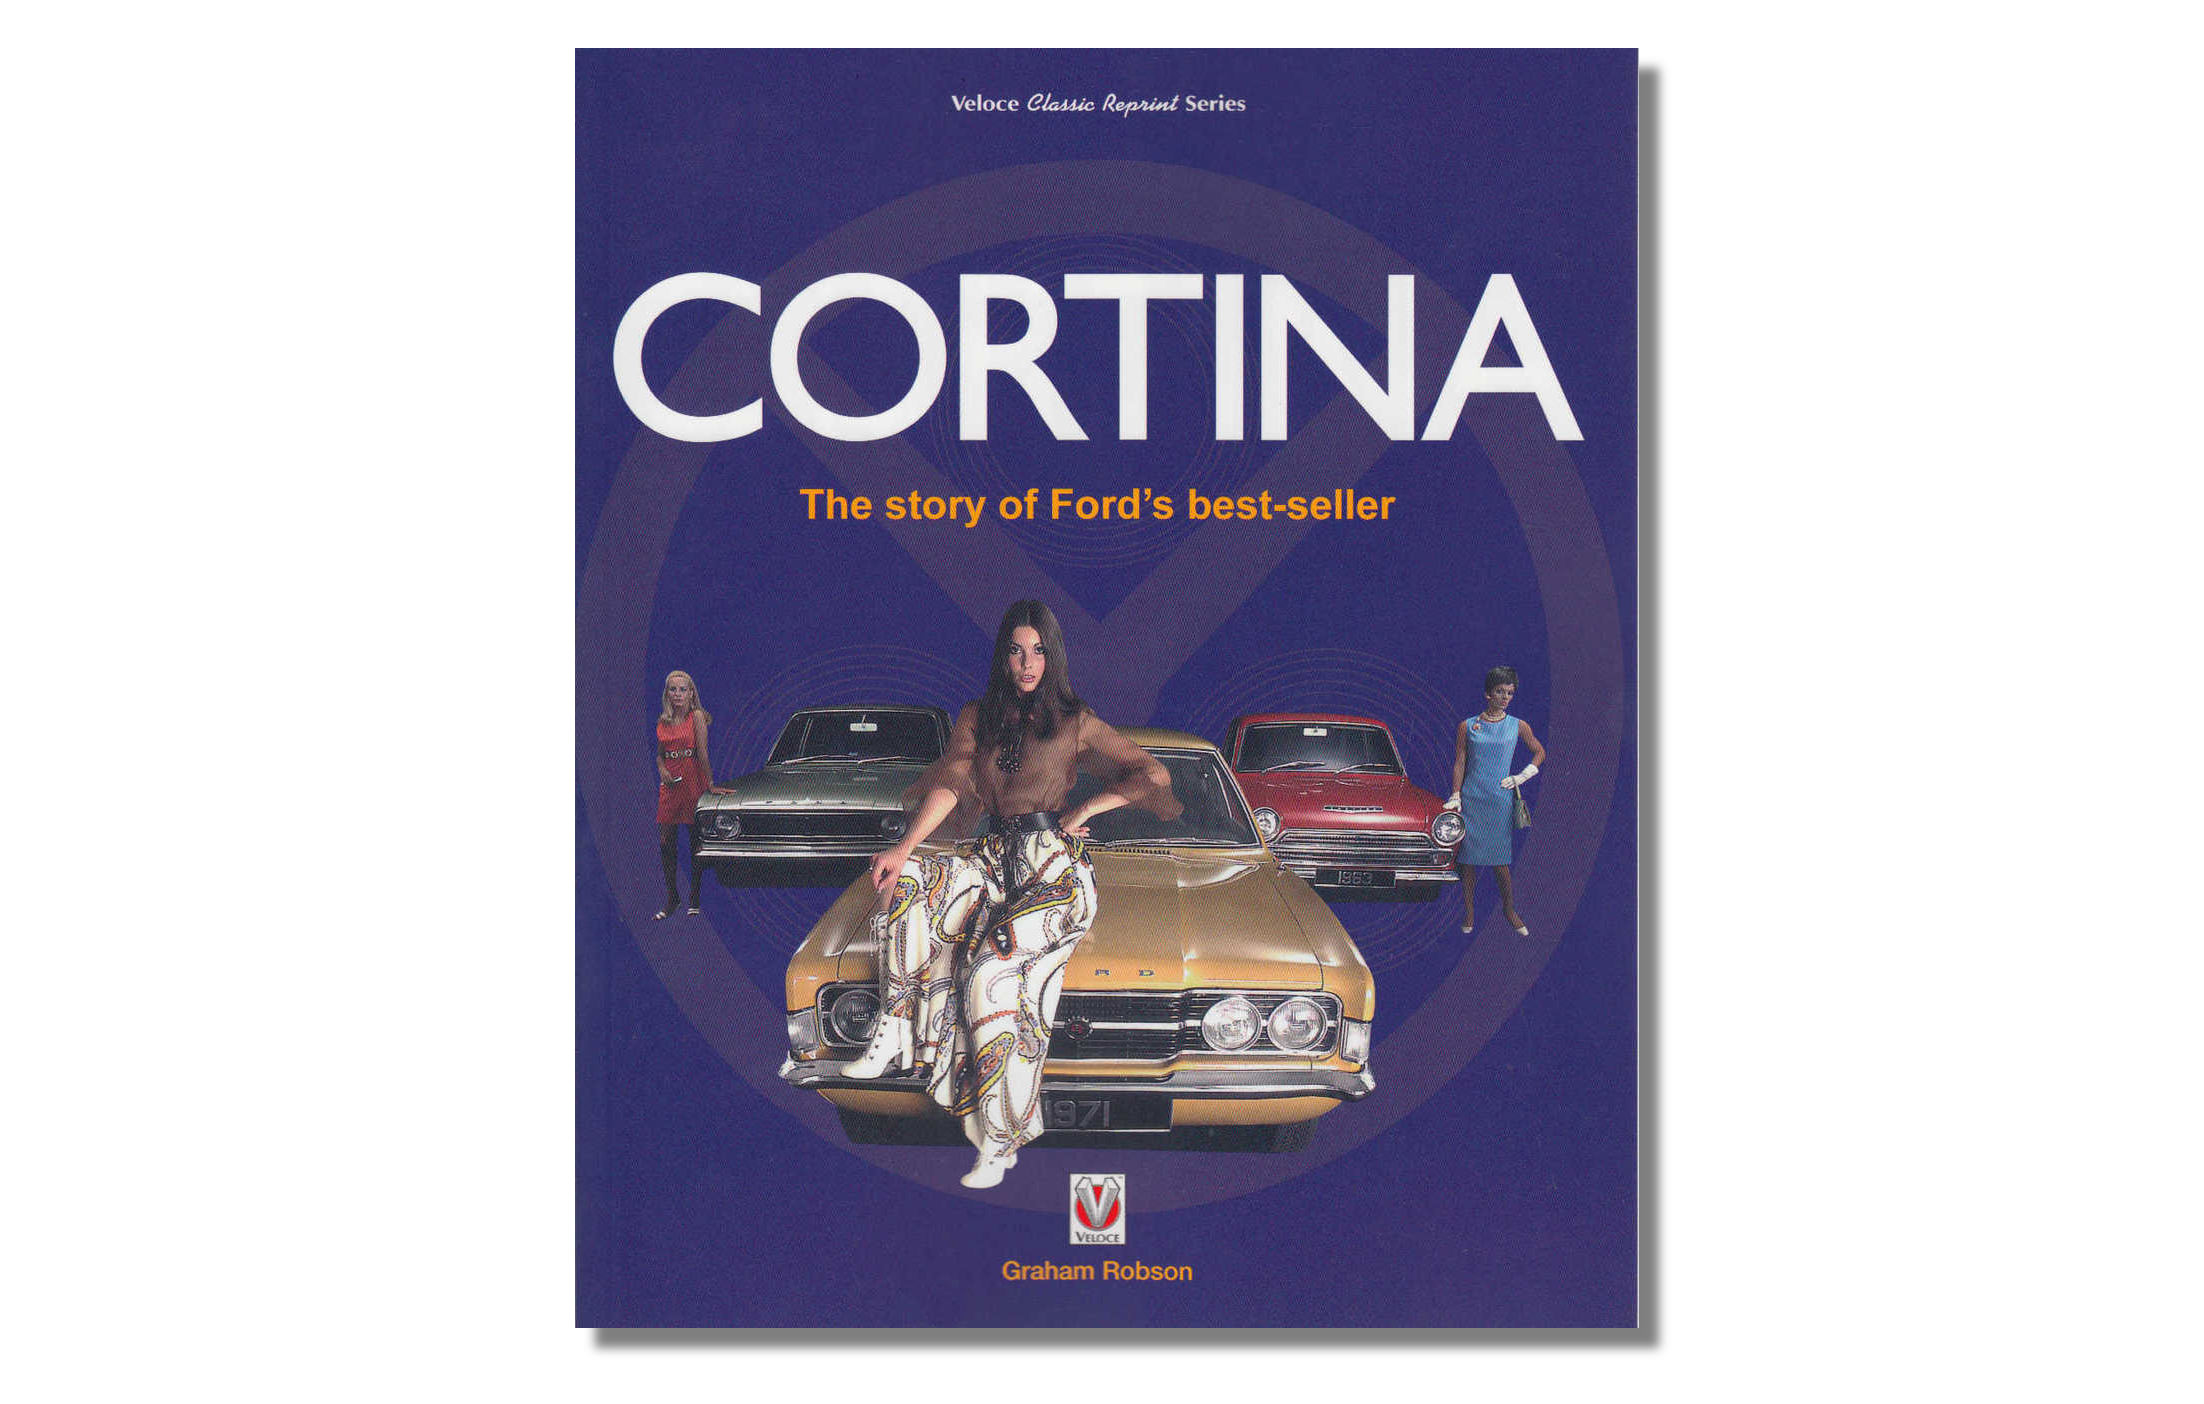 Cortina The Story of Ford's Best-Seller Book